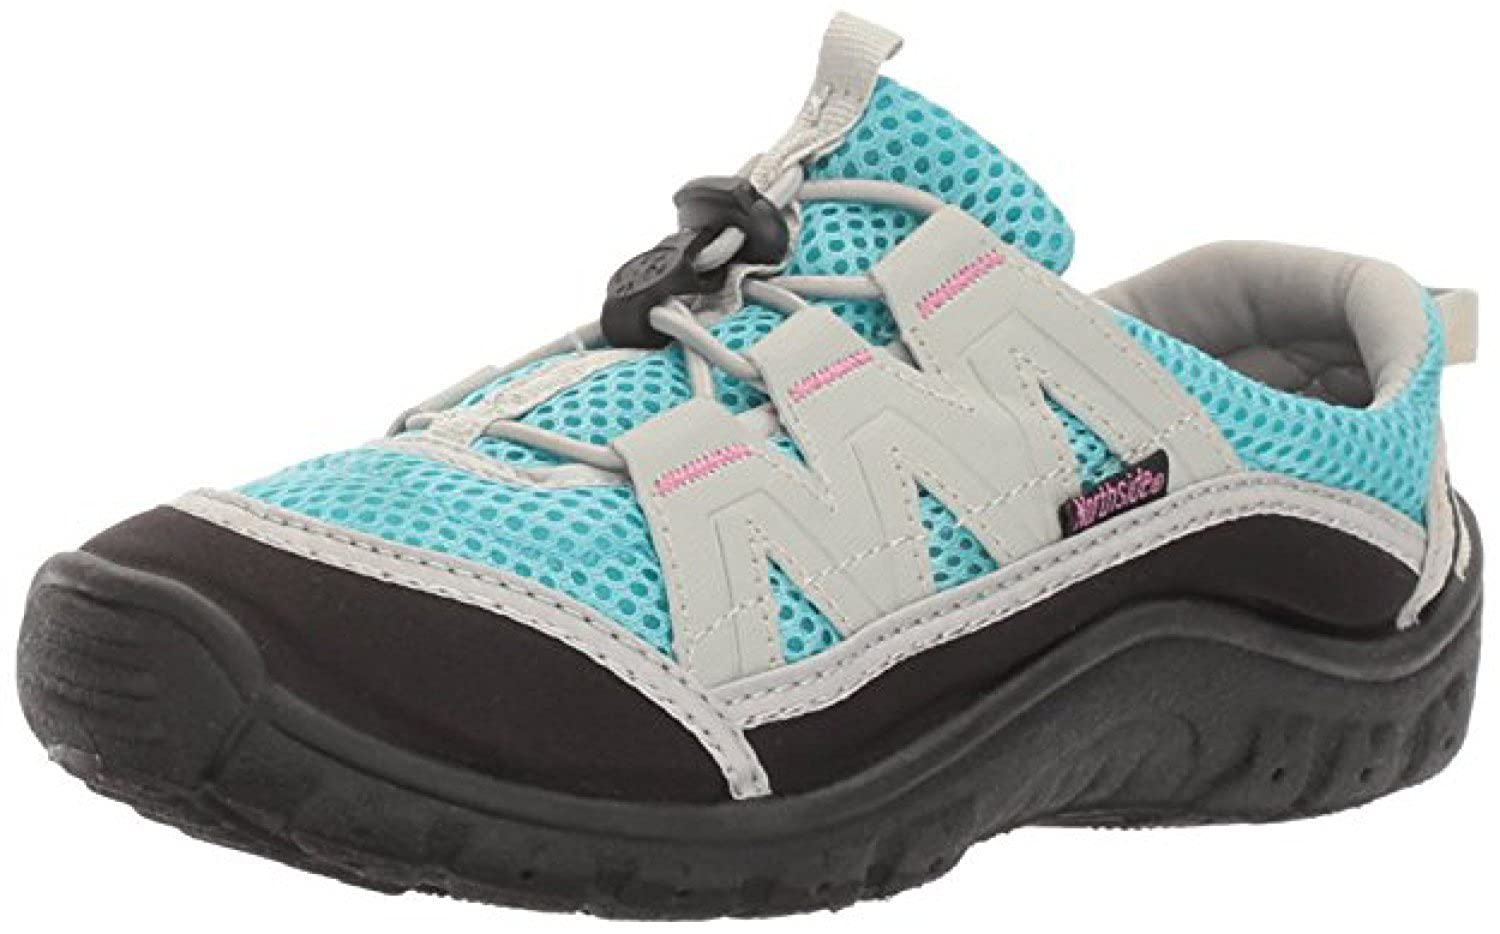 Northside Kids Brille II Summer Water Shoe with a Waterproof Wet Dry Bag